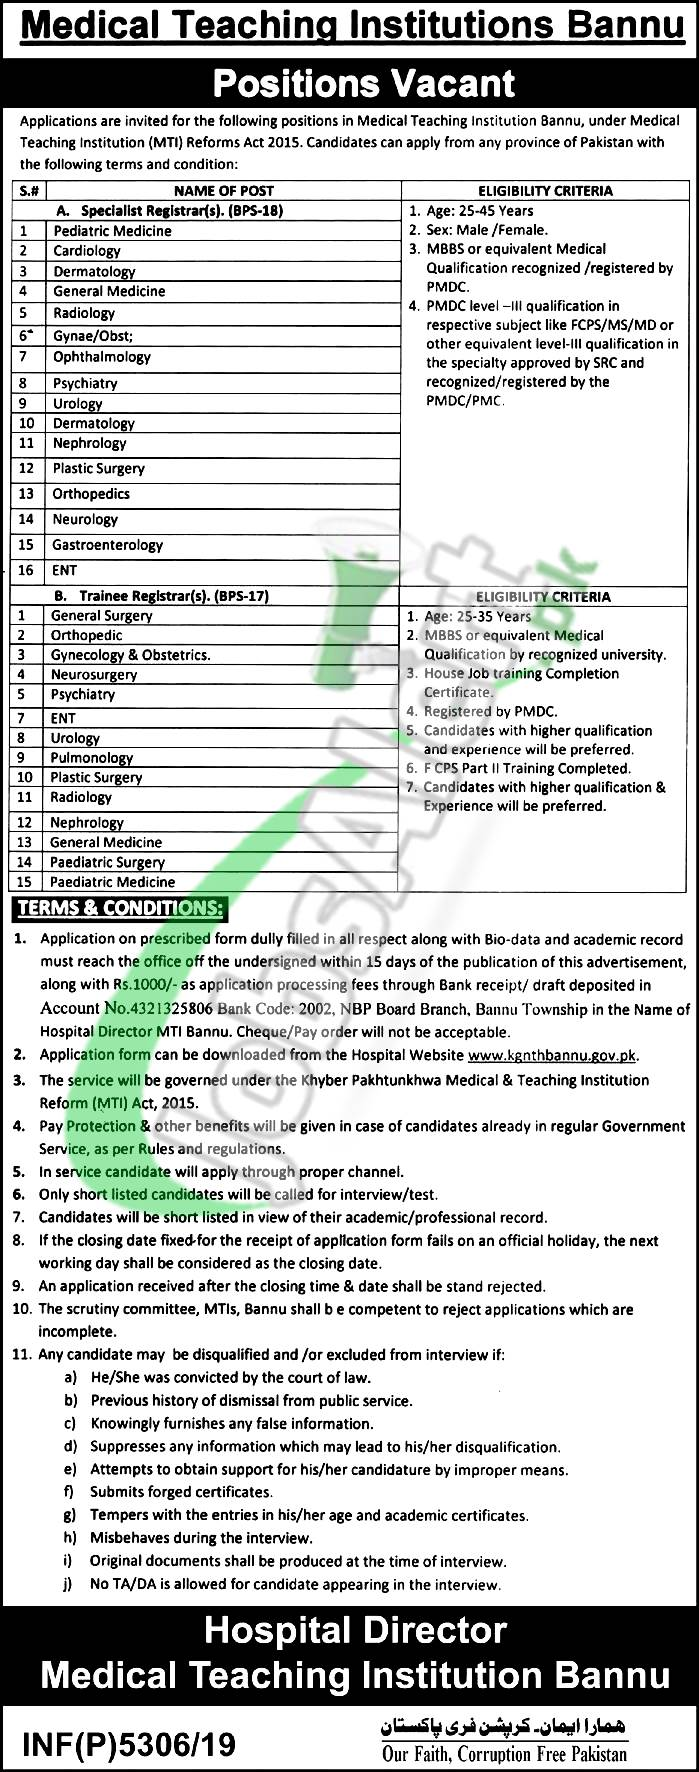 Medical Teaching Institution Bannu Positions Vacant